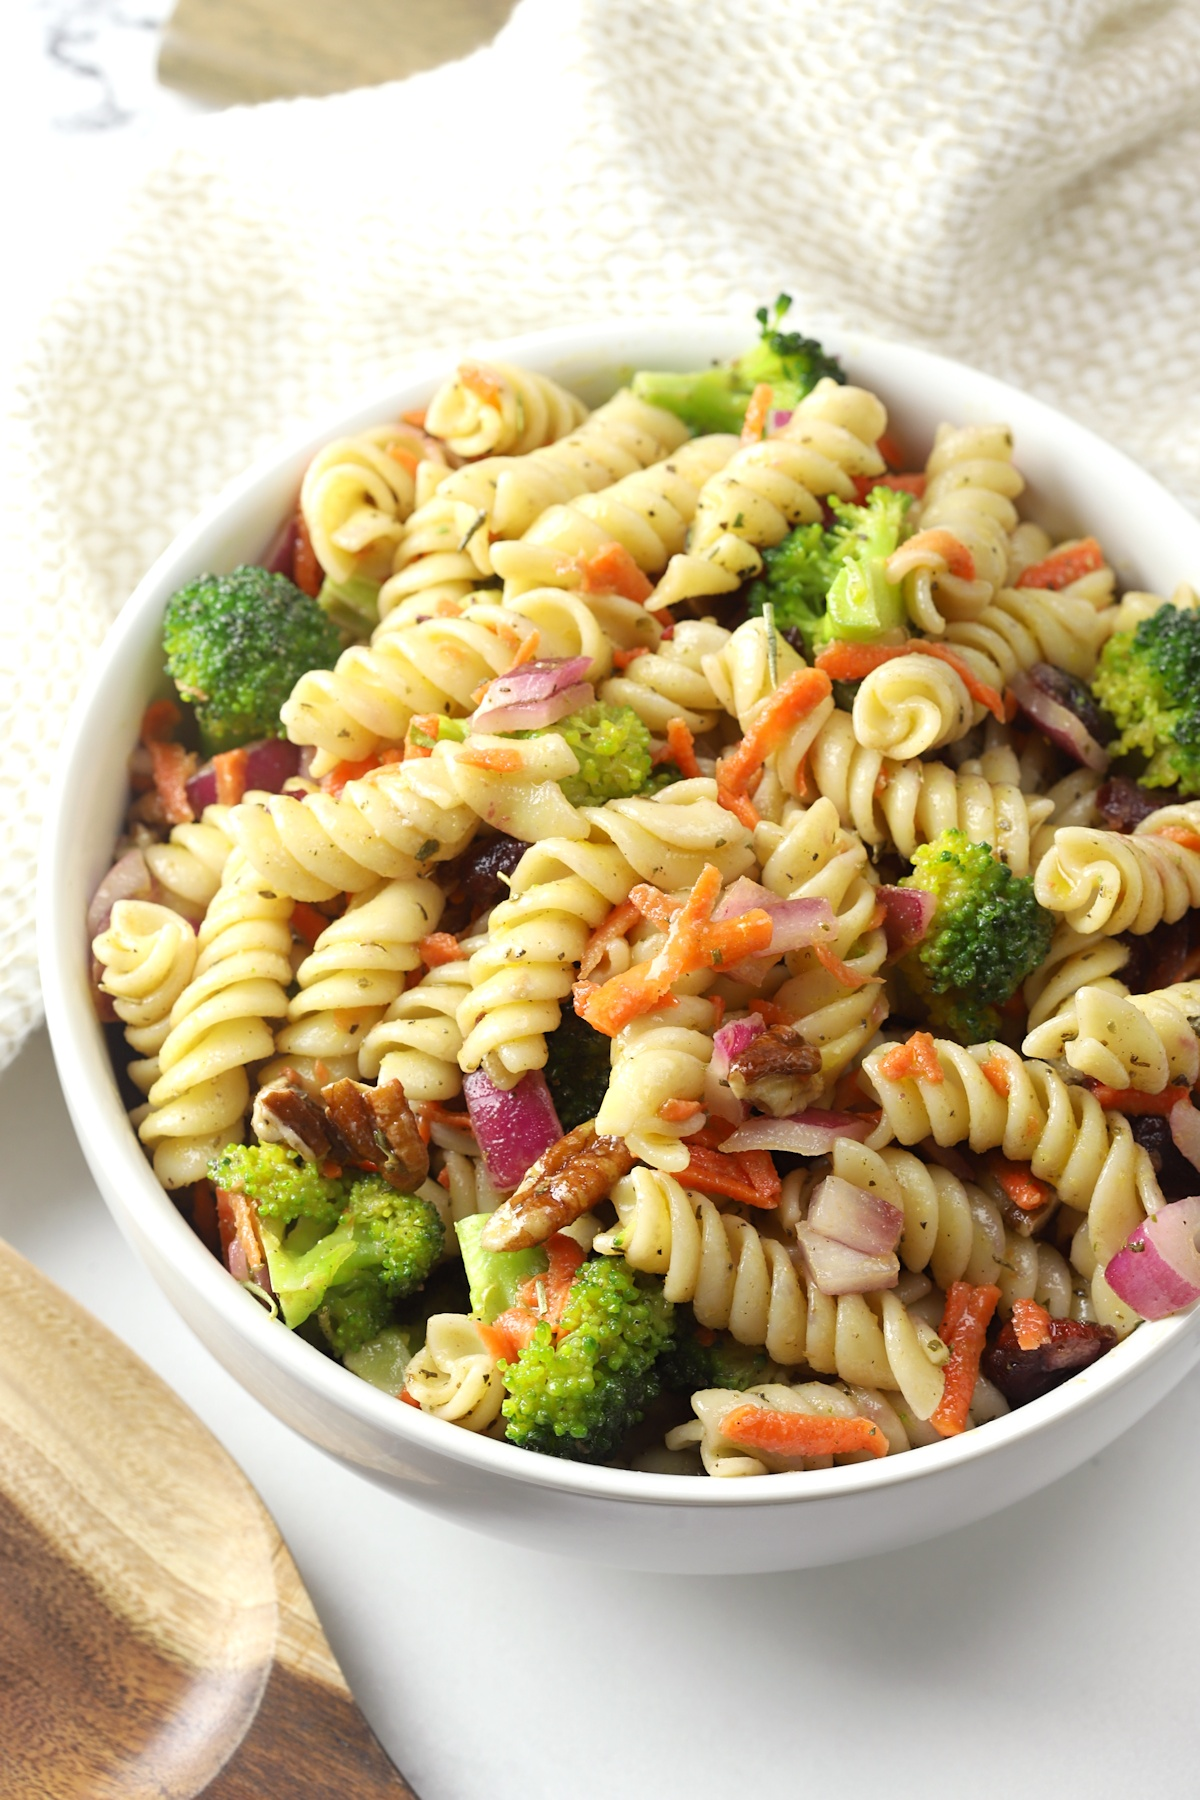 A white bowl filled with pasta salad.